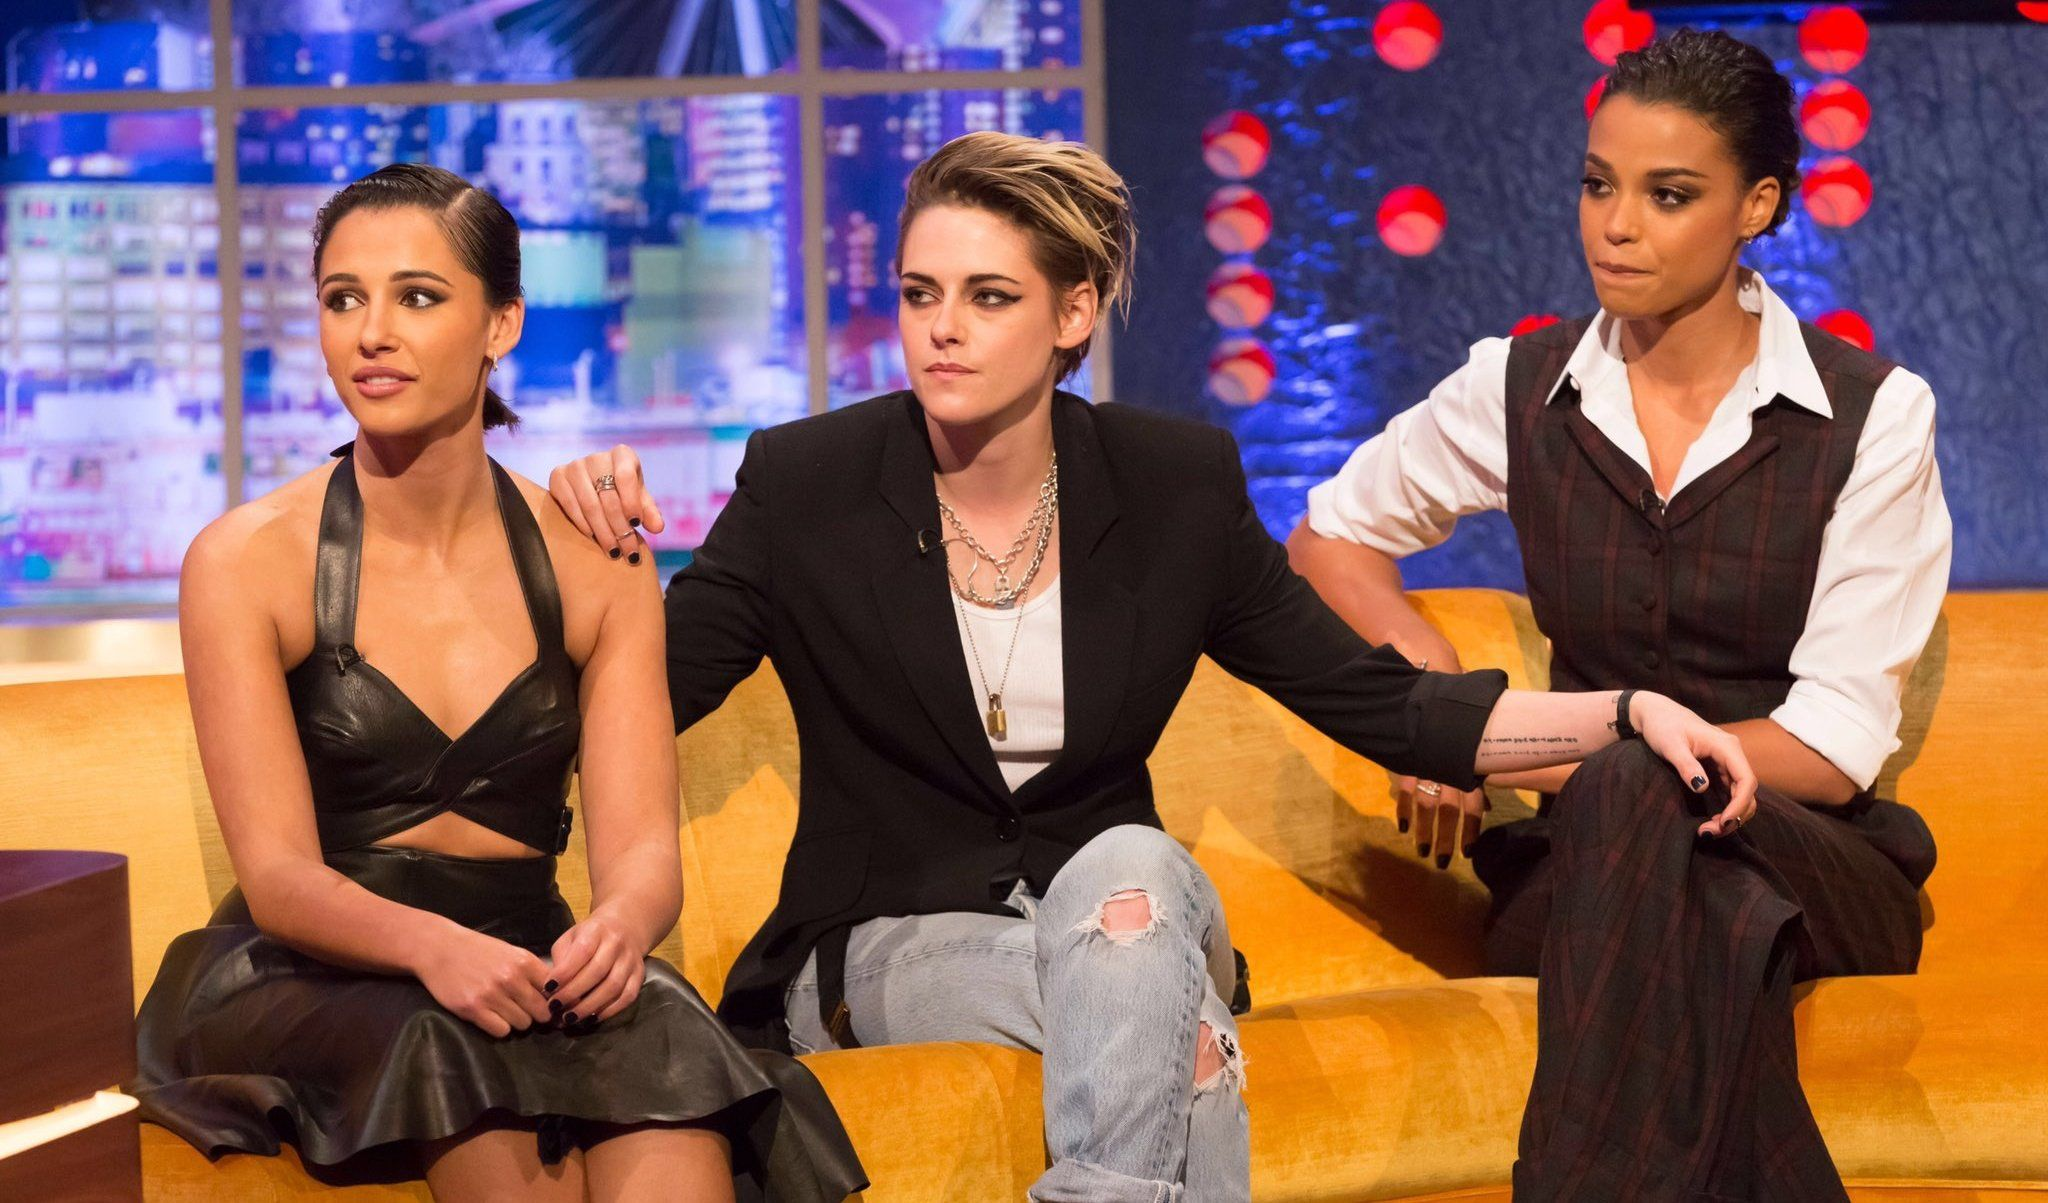 Pin By Armiank On Girl Crushes In 2021 Kristen Stewart Kristen Stewart Style Girl Crushes